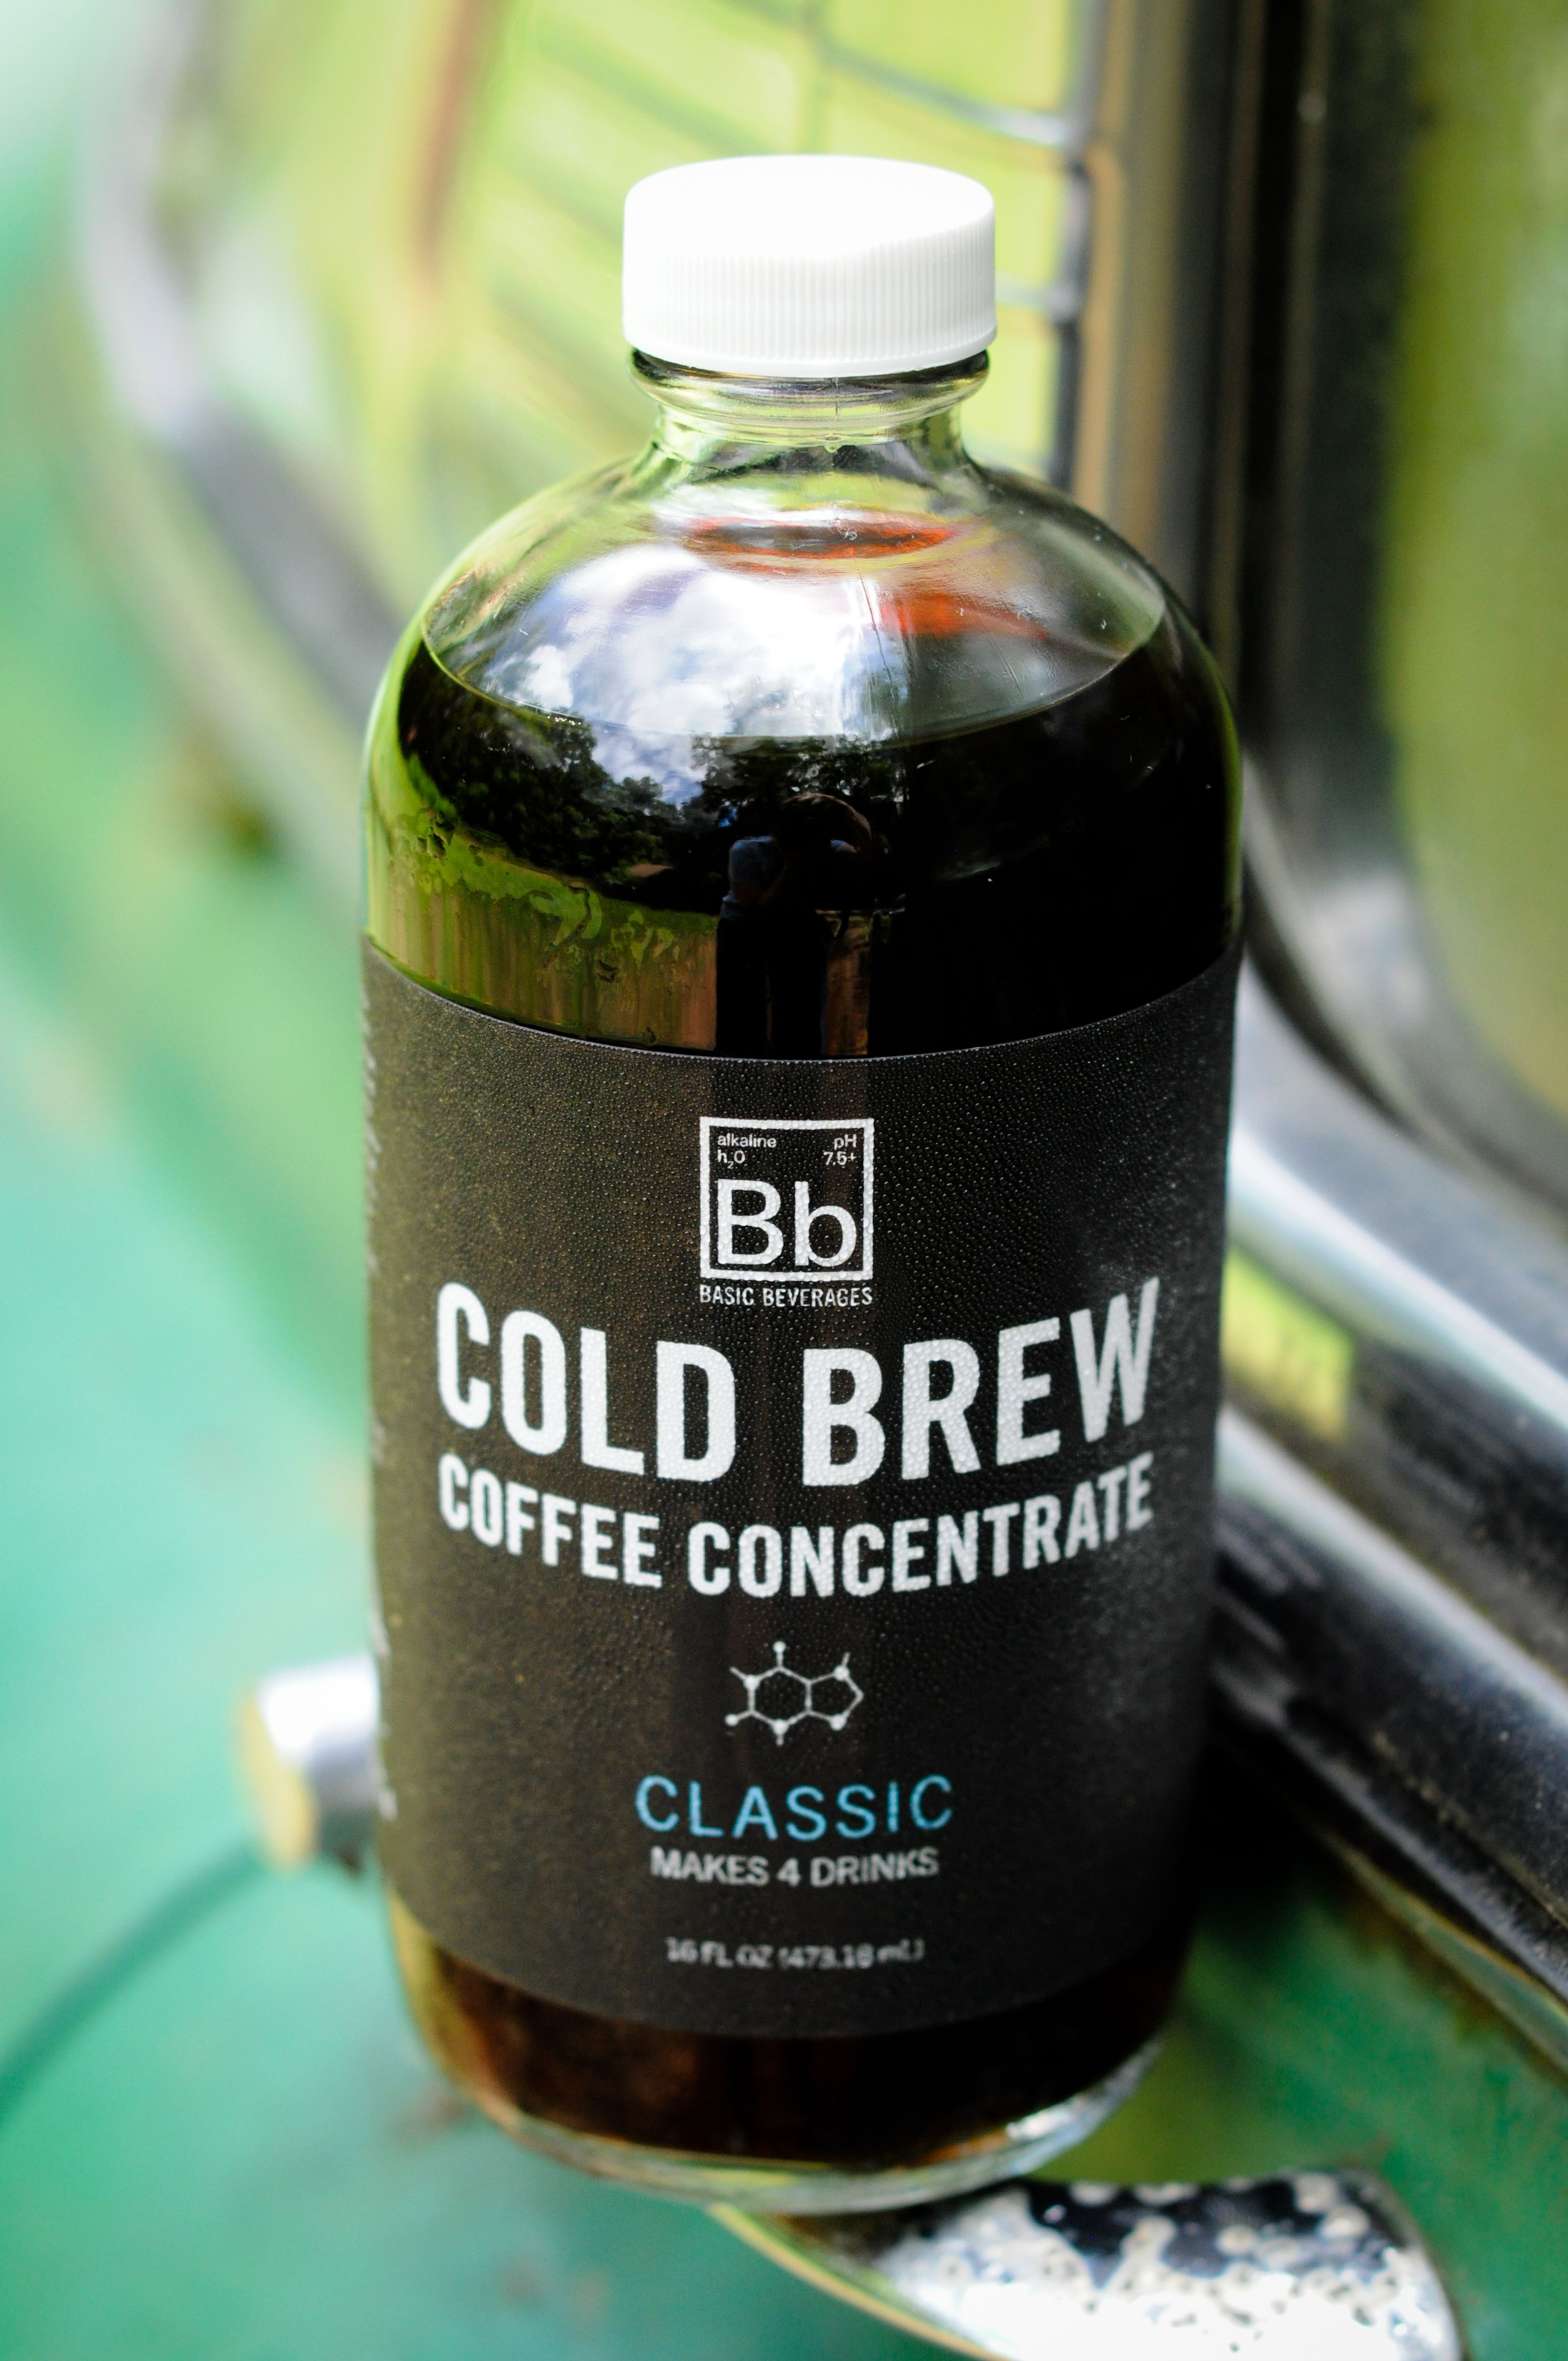 Cold Brew coffee concentrate Cold brew packaging, Cold